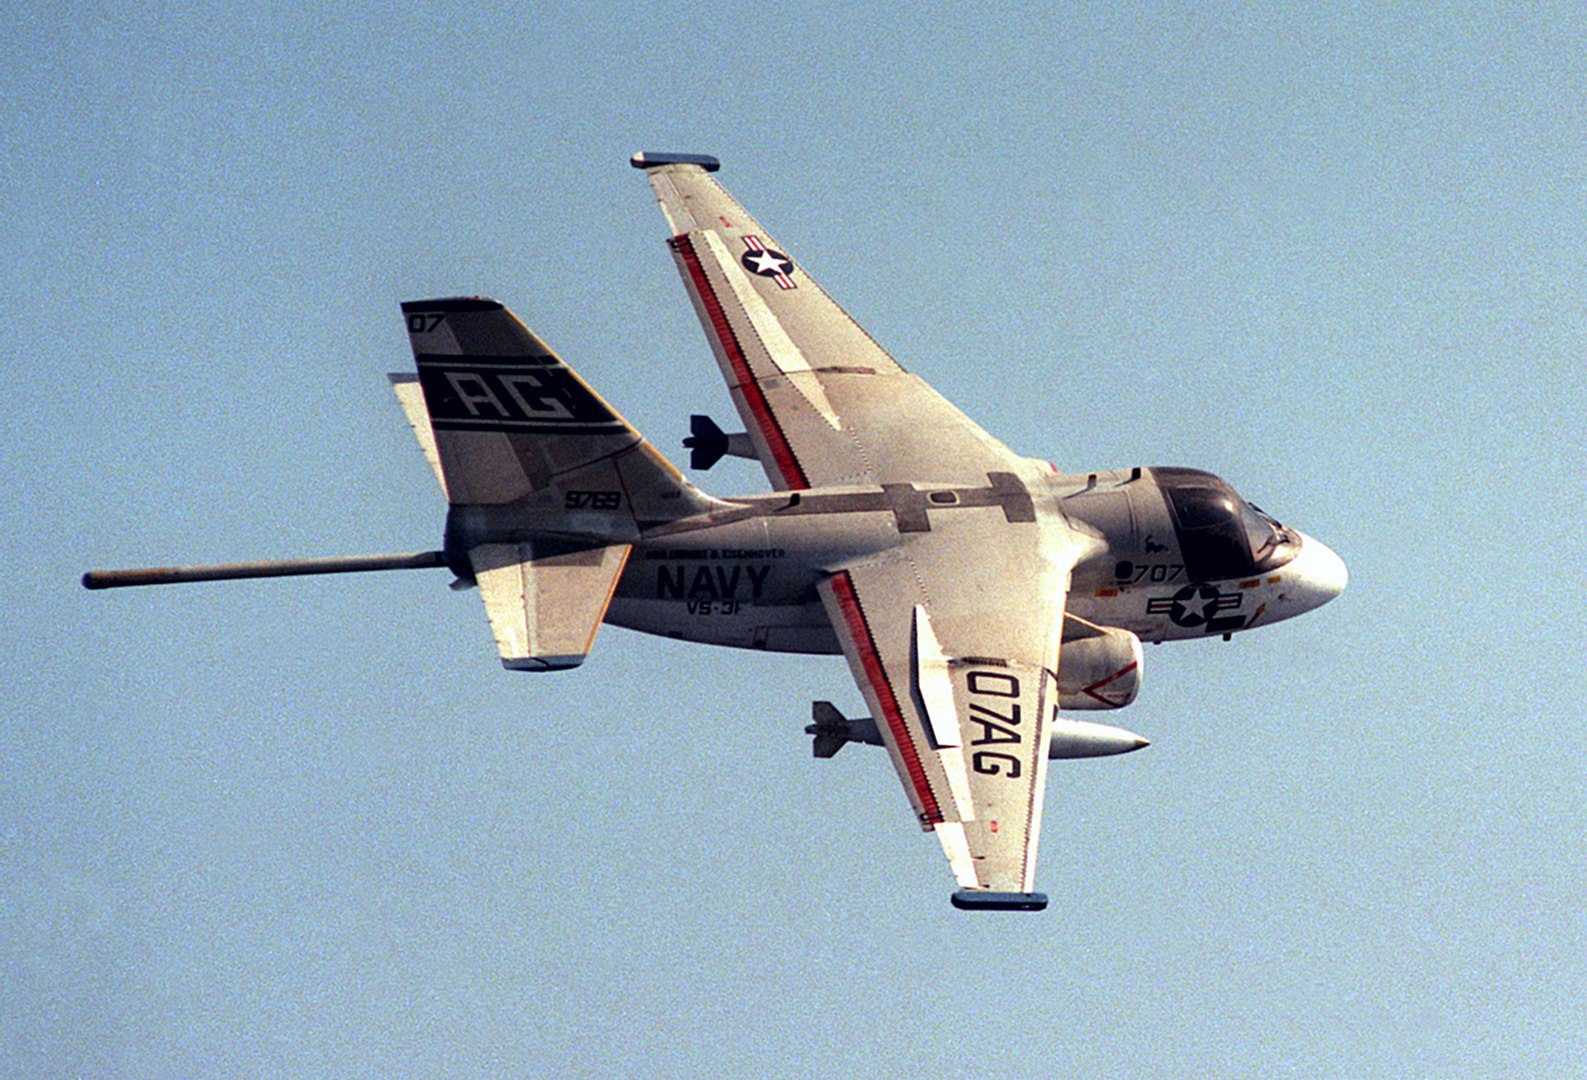 Meet The S-3 Viking: Sub Hunter, Spy Plane, Aerial Tanker, And Even Attack Jet